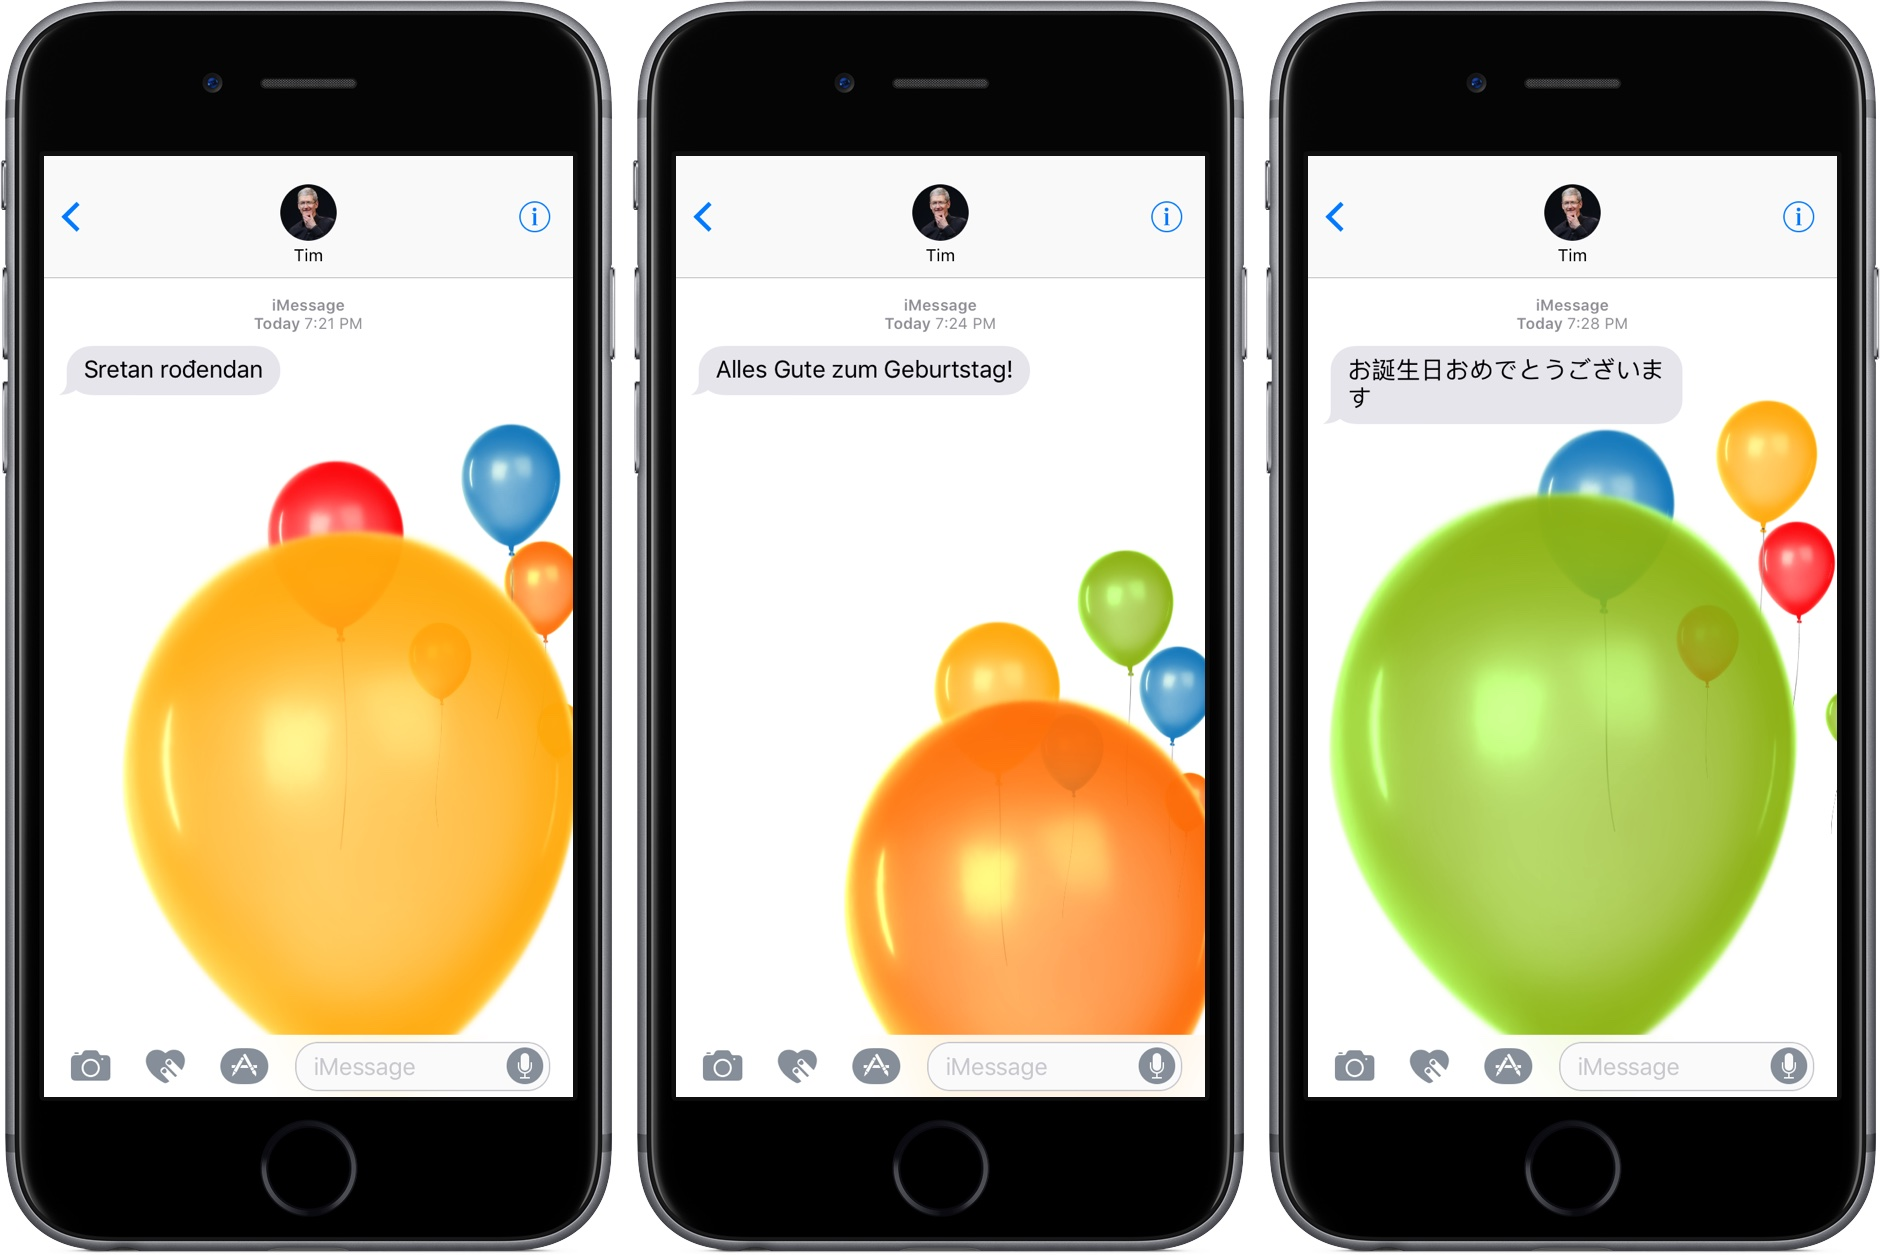 Ios 10 Tidbit Auto Playing Full Screen Effects In Messages For Texts Like Happy Birthday